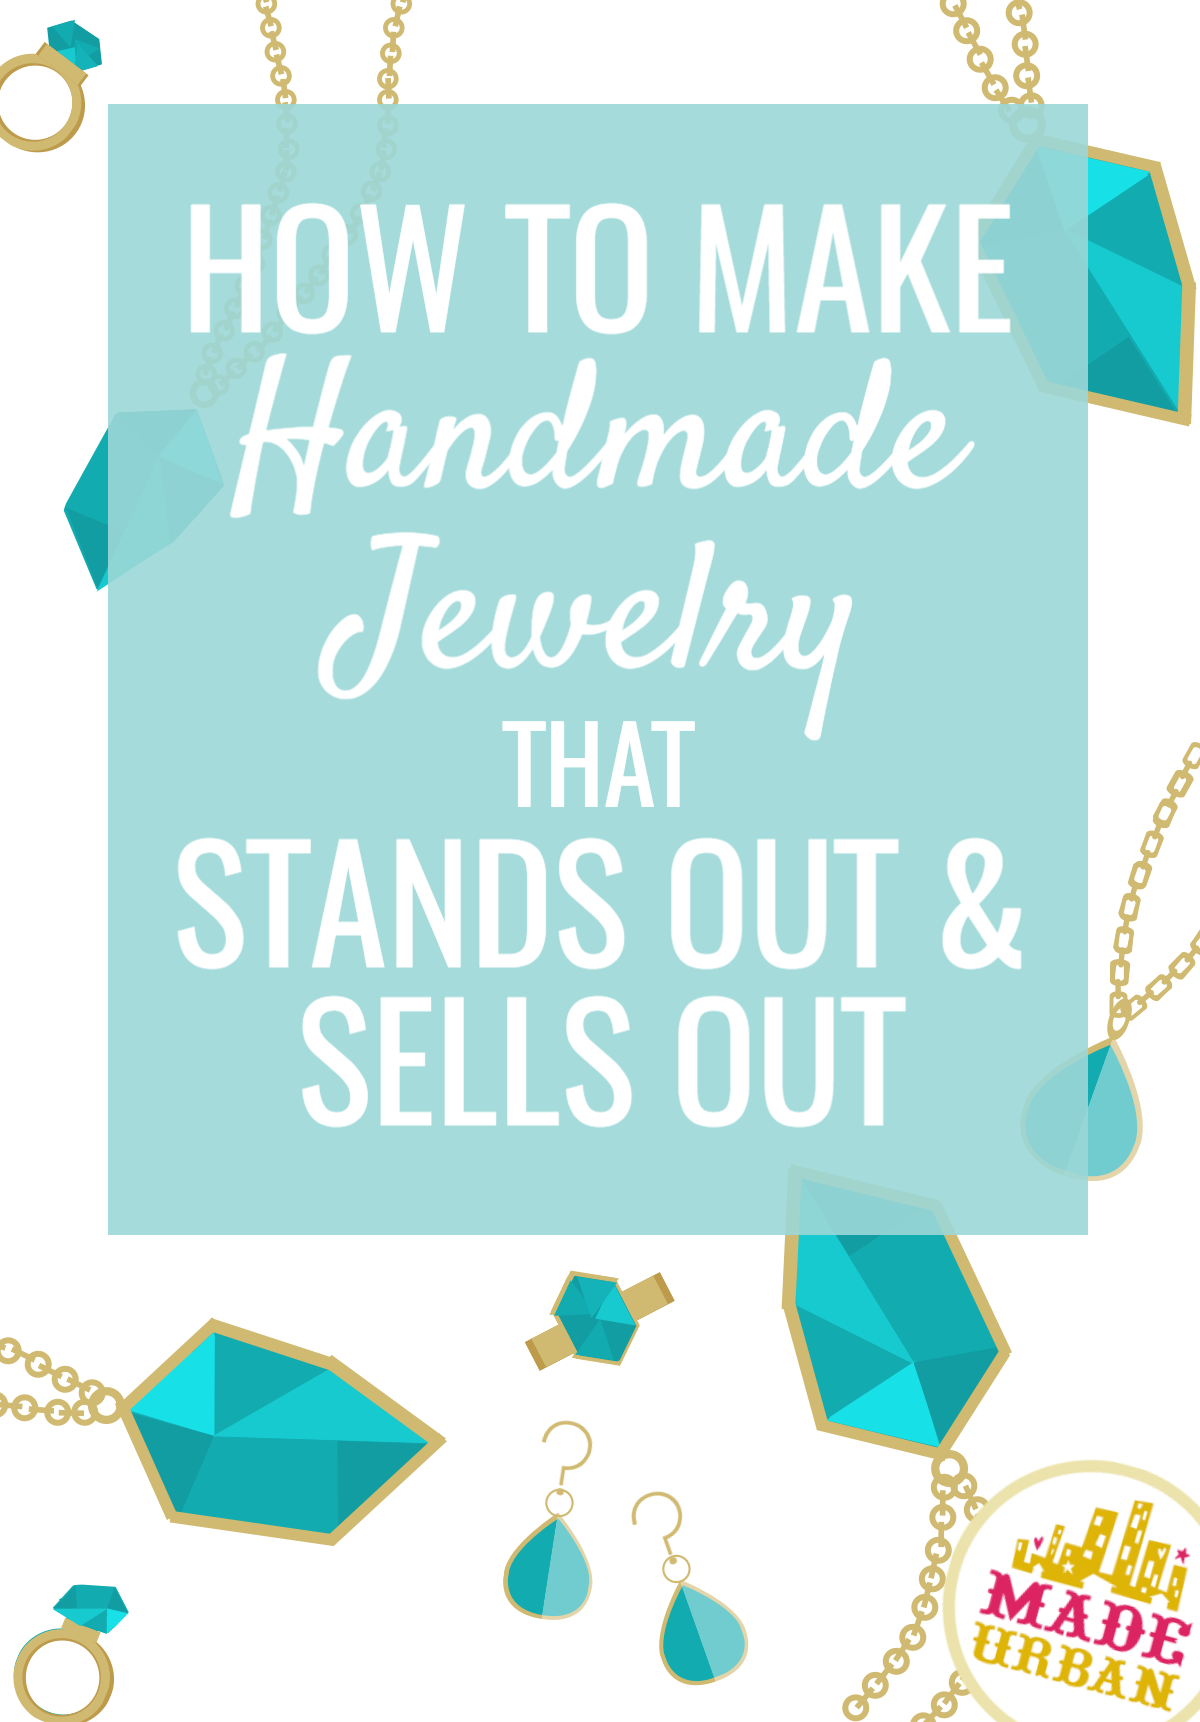 Handmade jewelry is a popular product to sell, which means if you want to run a profitable jewelry business, you must stand out to sell out. Here's how.